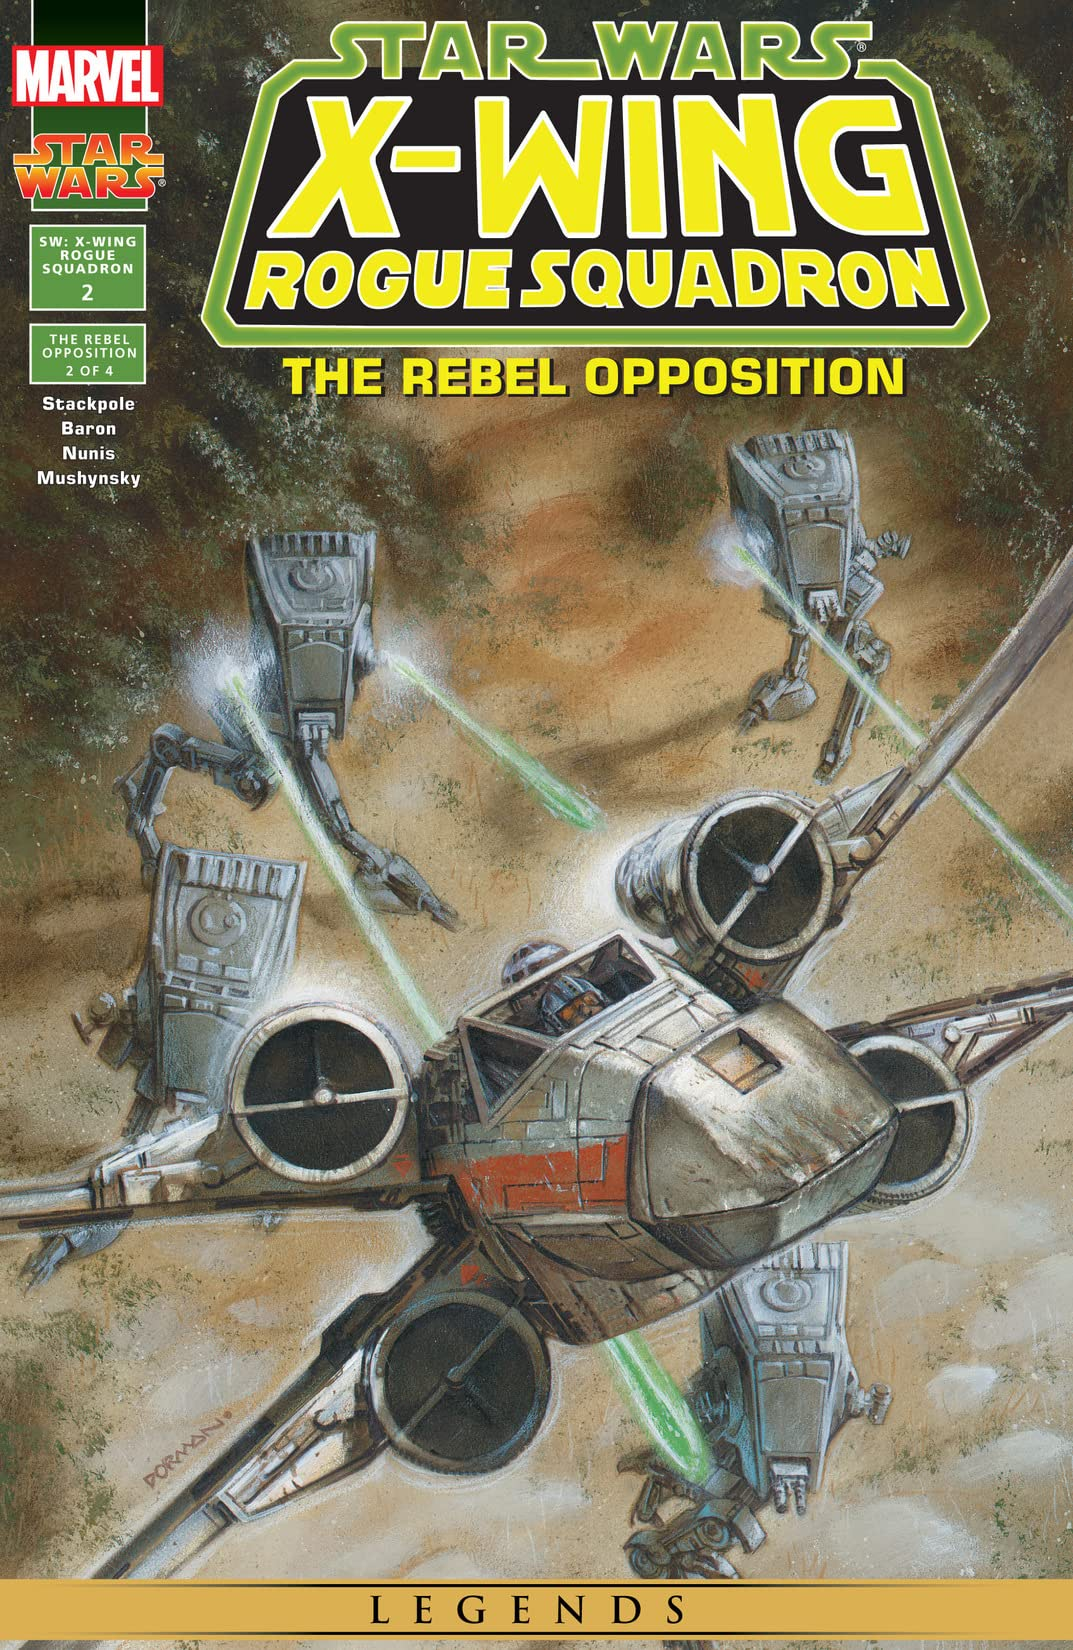 Star Wars: X-Wing Rogue Squadron (1995-1998) #2